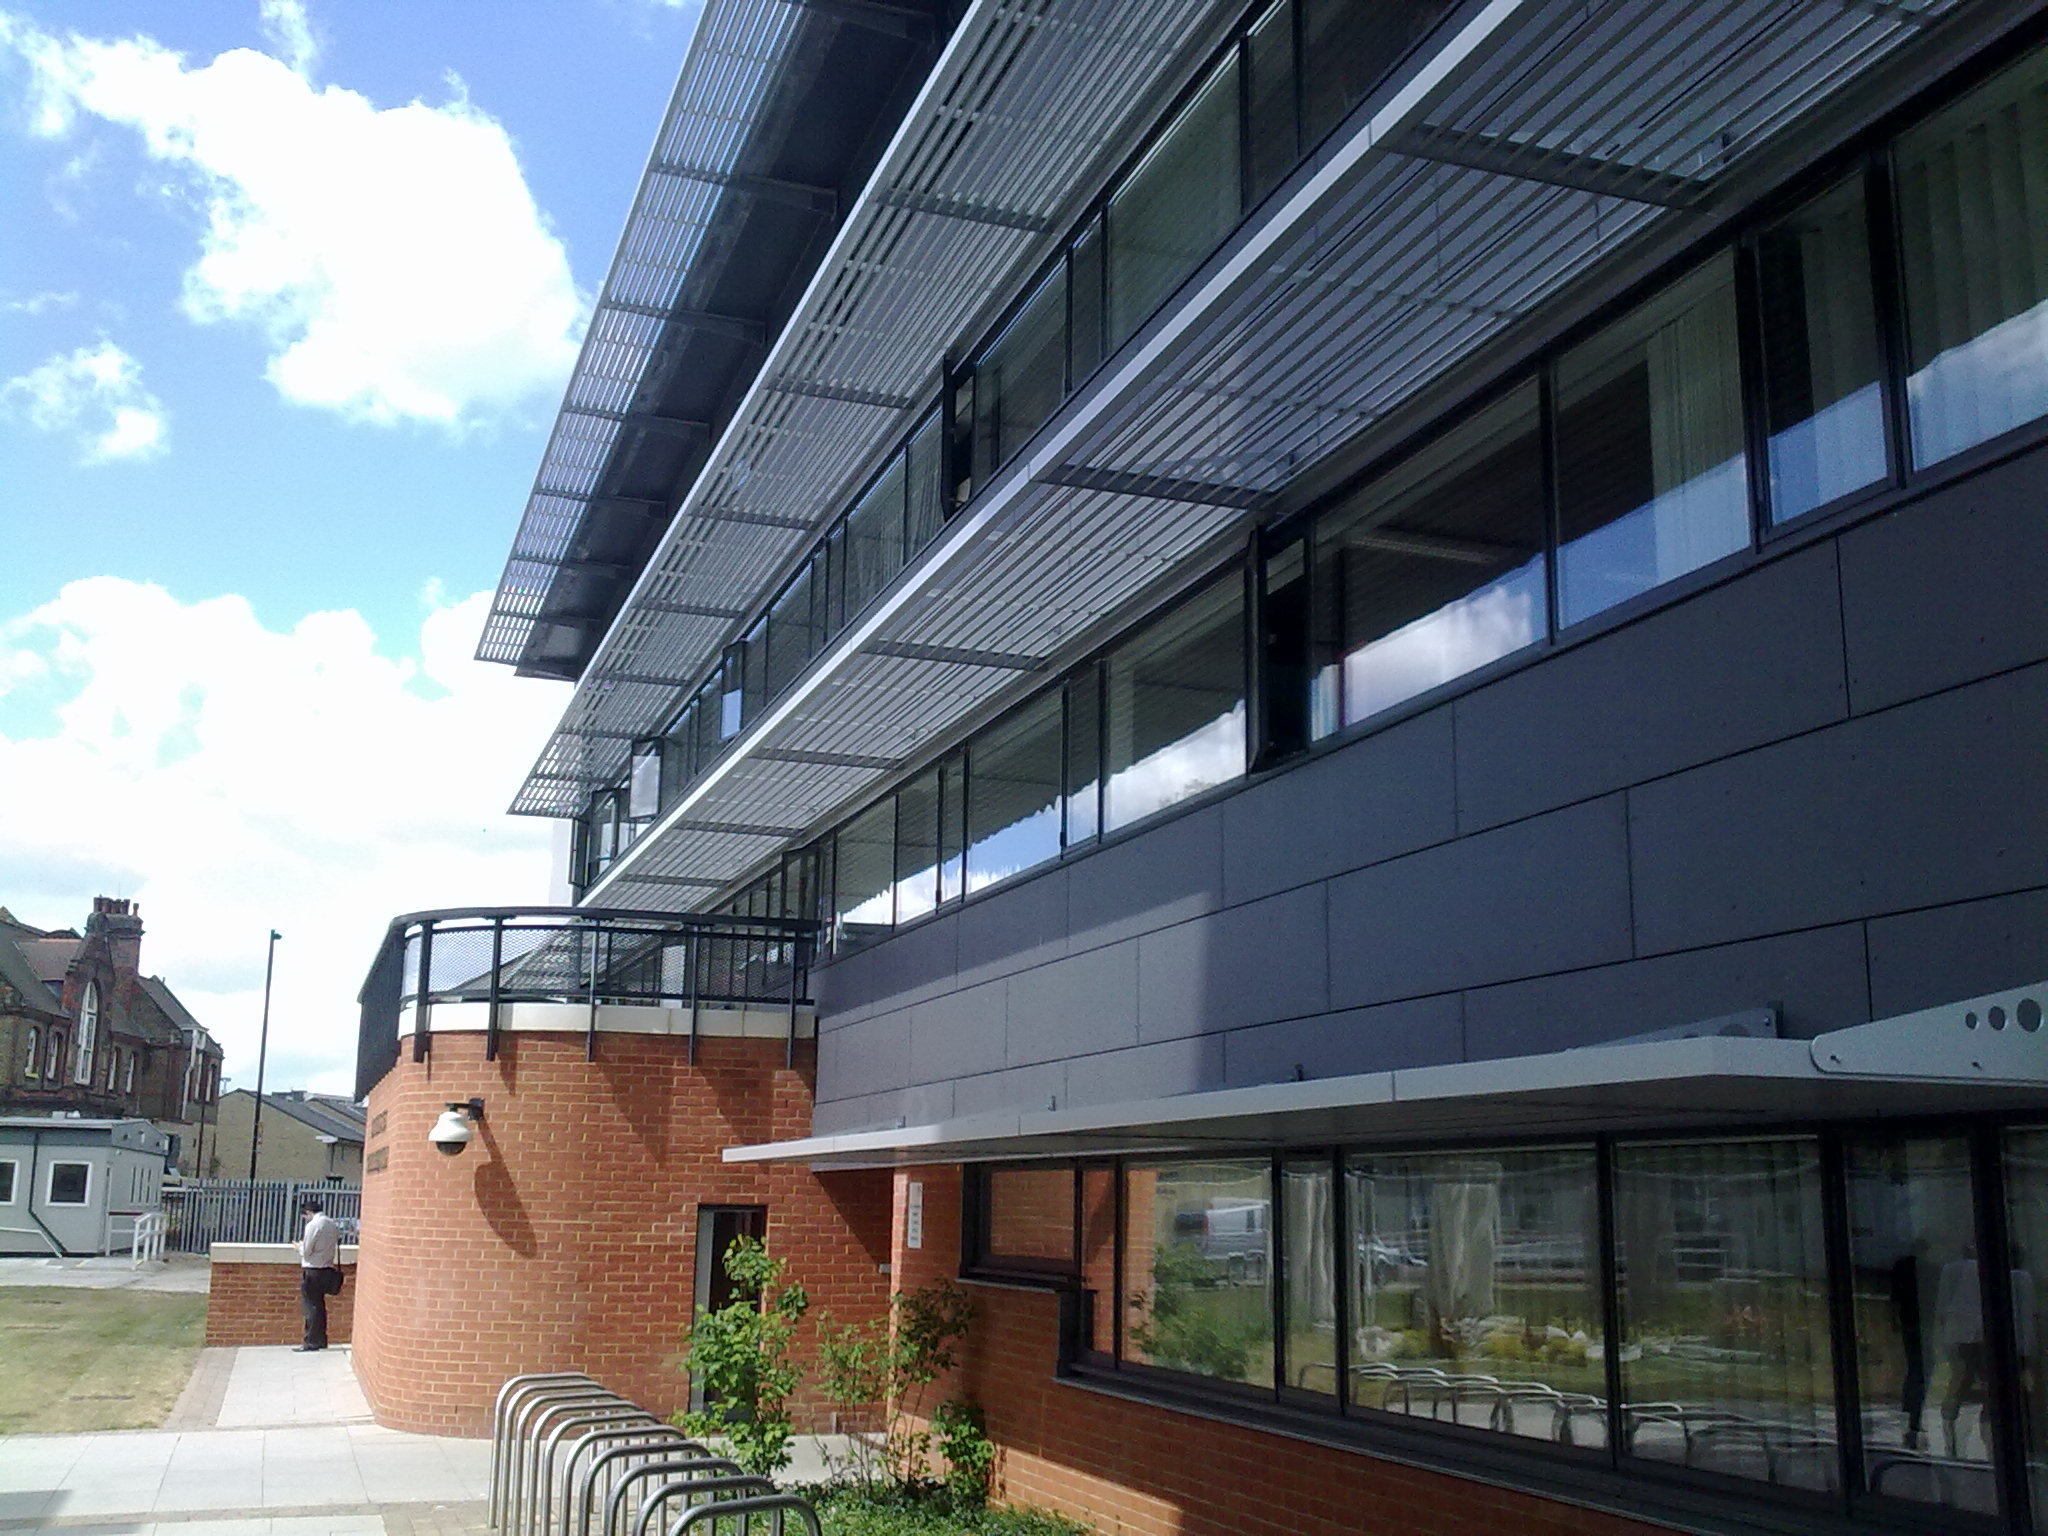 Continuous Solar Shading System